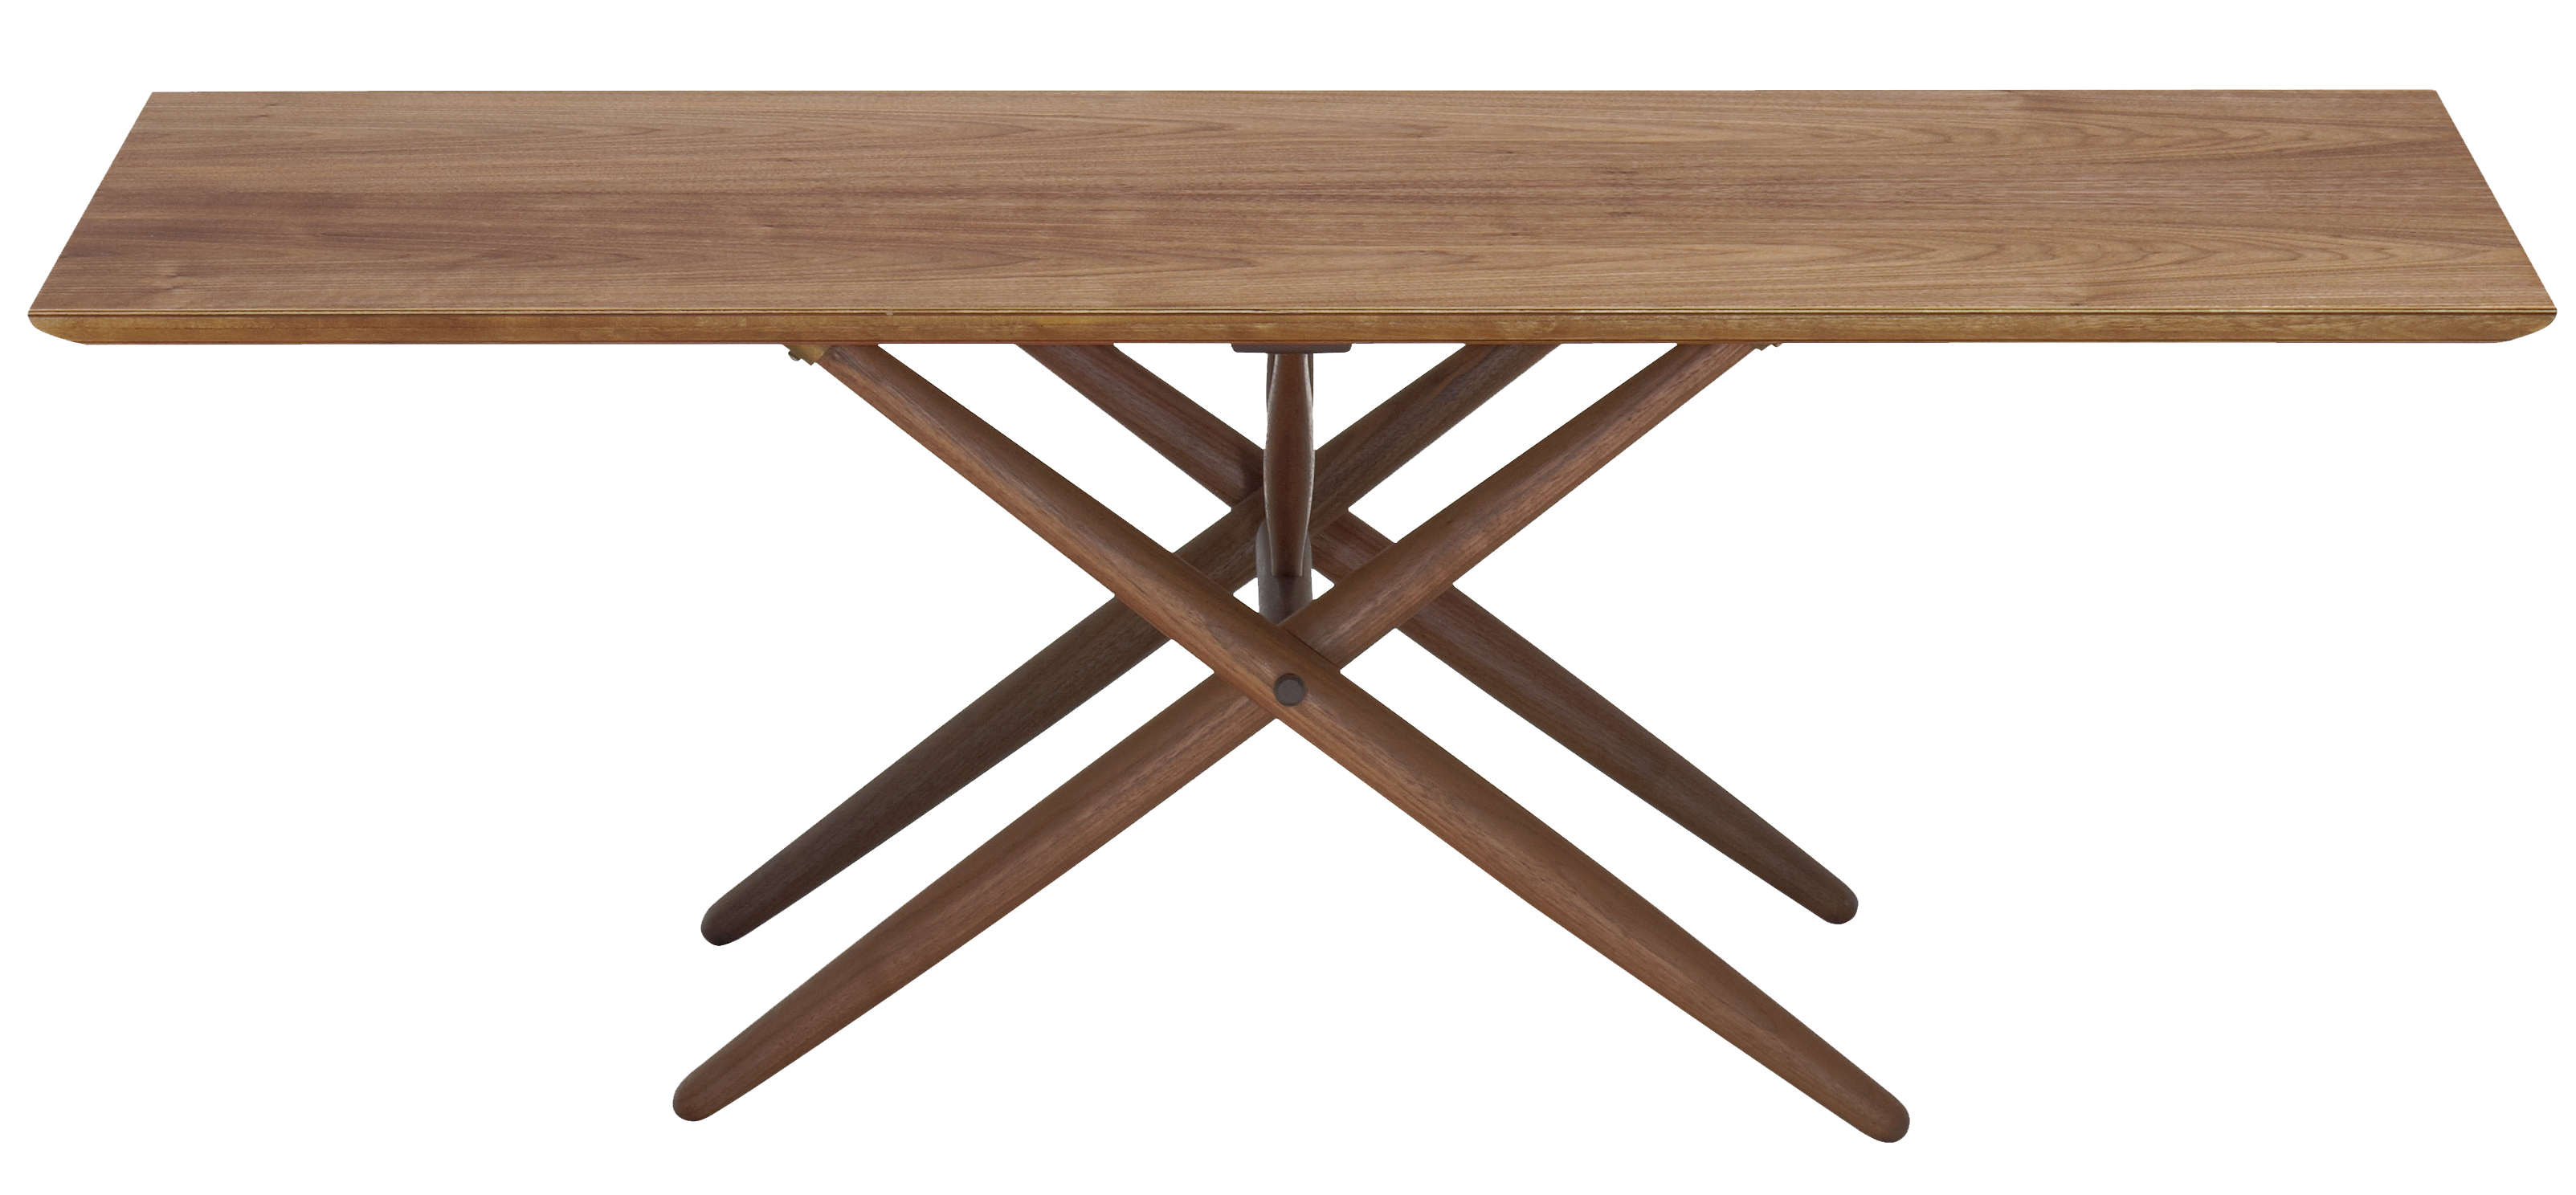 Download Table PNG File.